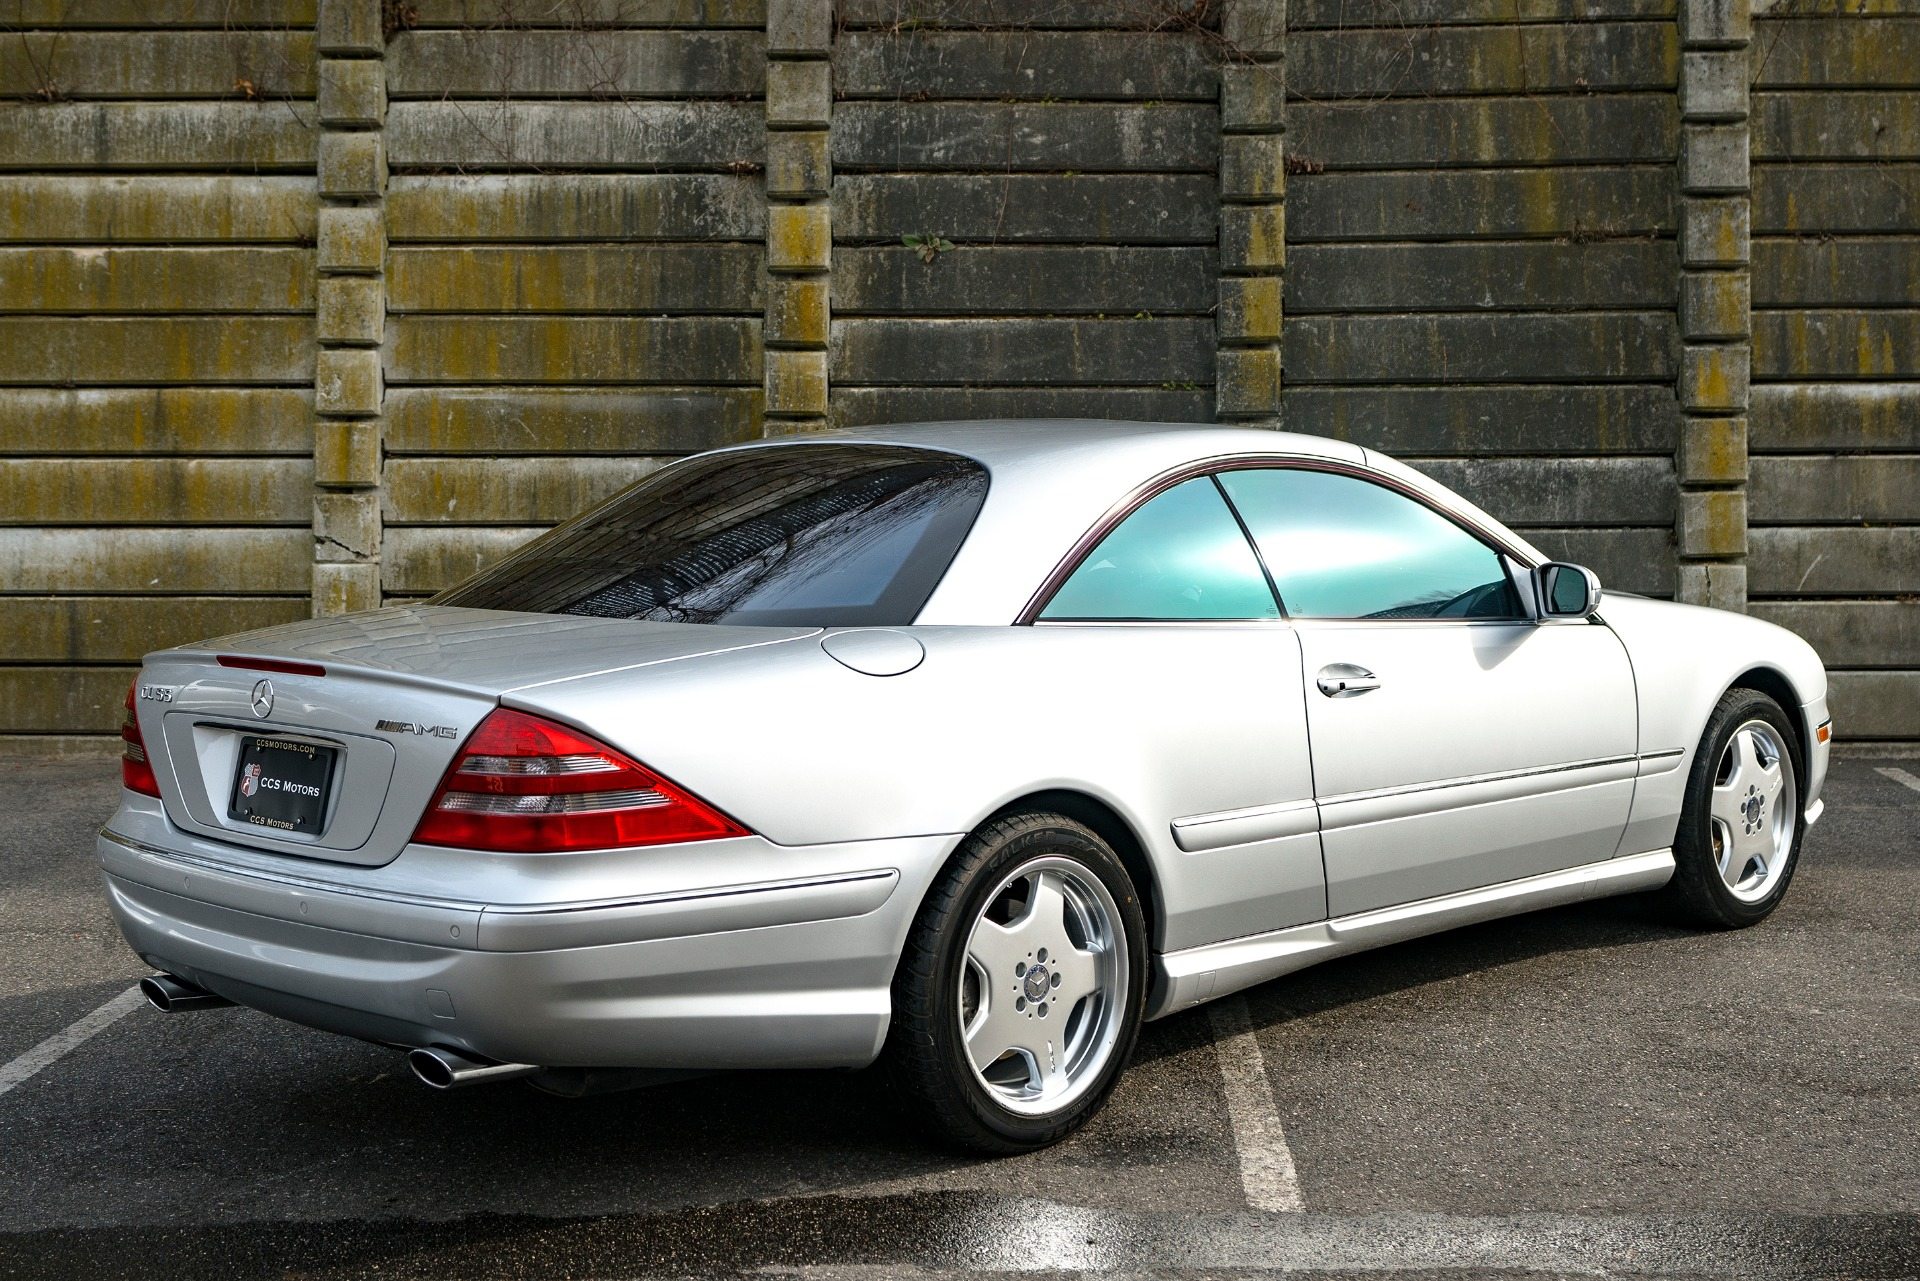 2002 mercedes benz cl55 amg stock 1471 for sale near oyster bay ny ny mercedes benz dealer. Black Bedroom Furniture Sets. Home Design Ideas